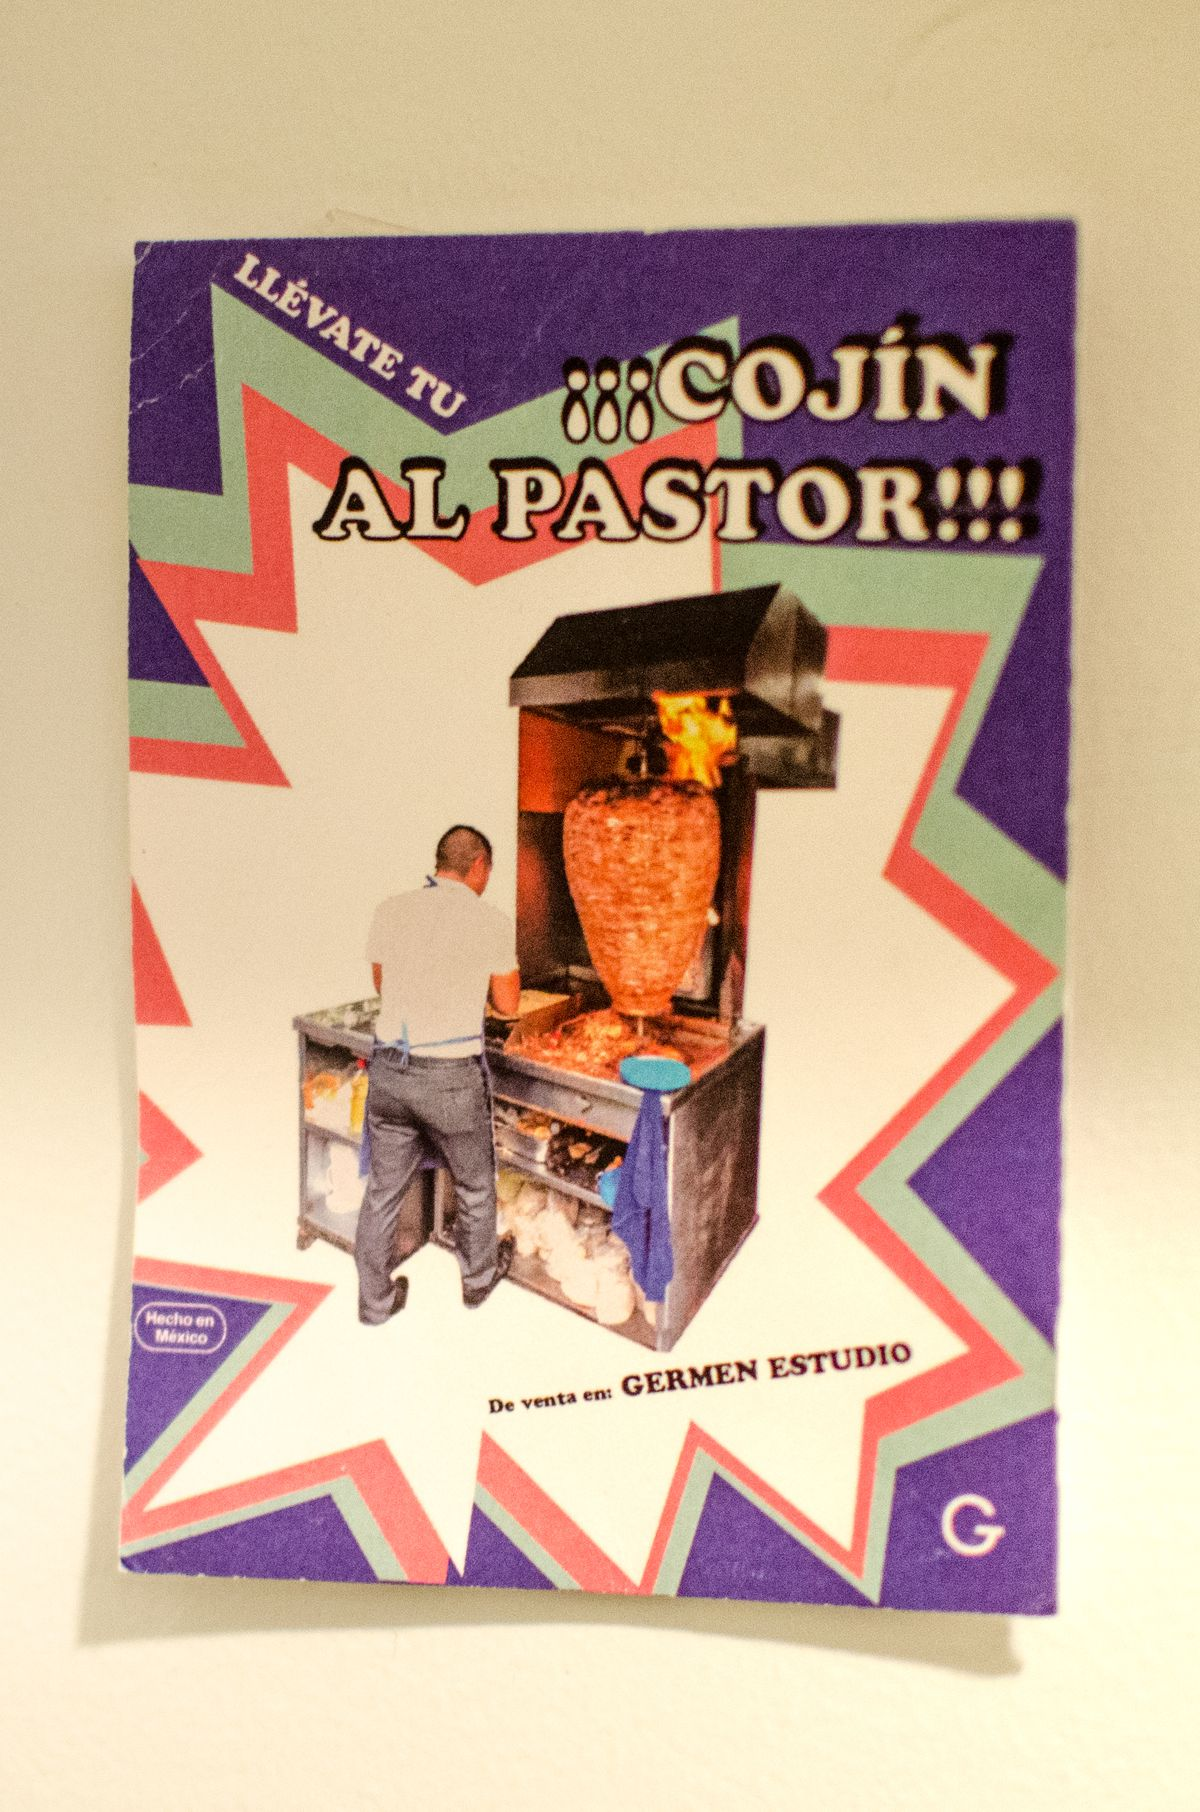 """A piece of paper features a photo of a man cooking al pastor and the words """"Llevate tu"""" and """"Cojin al pastor"""""""